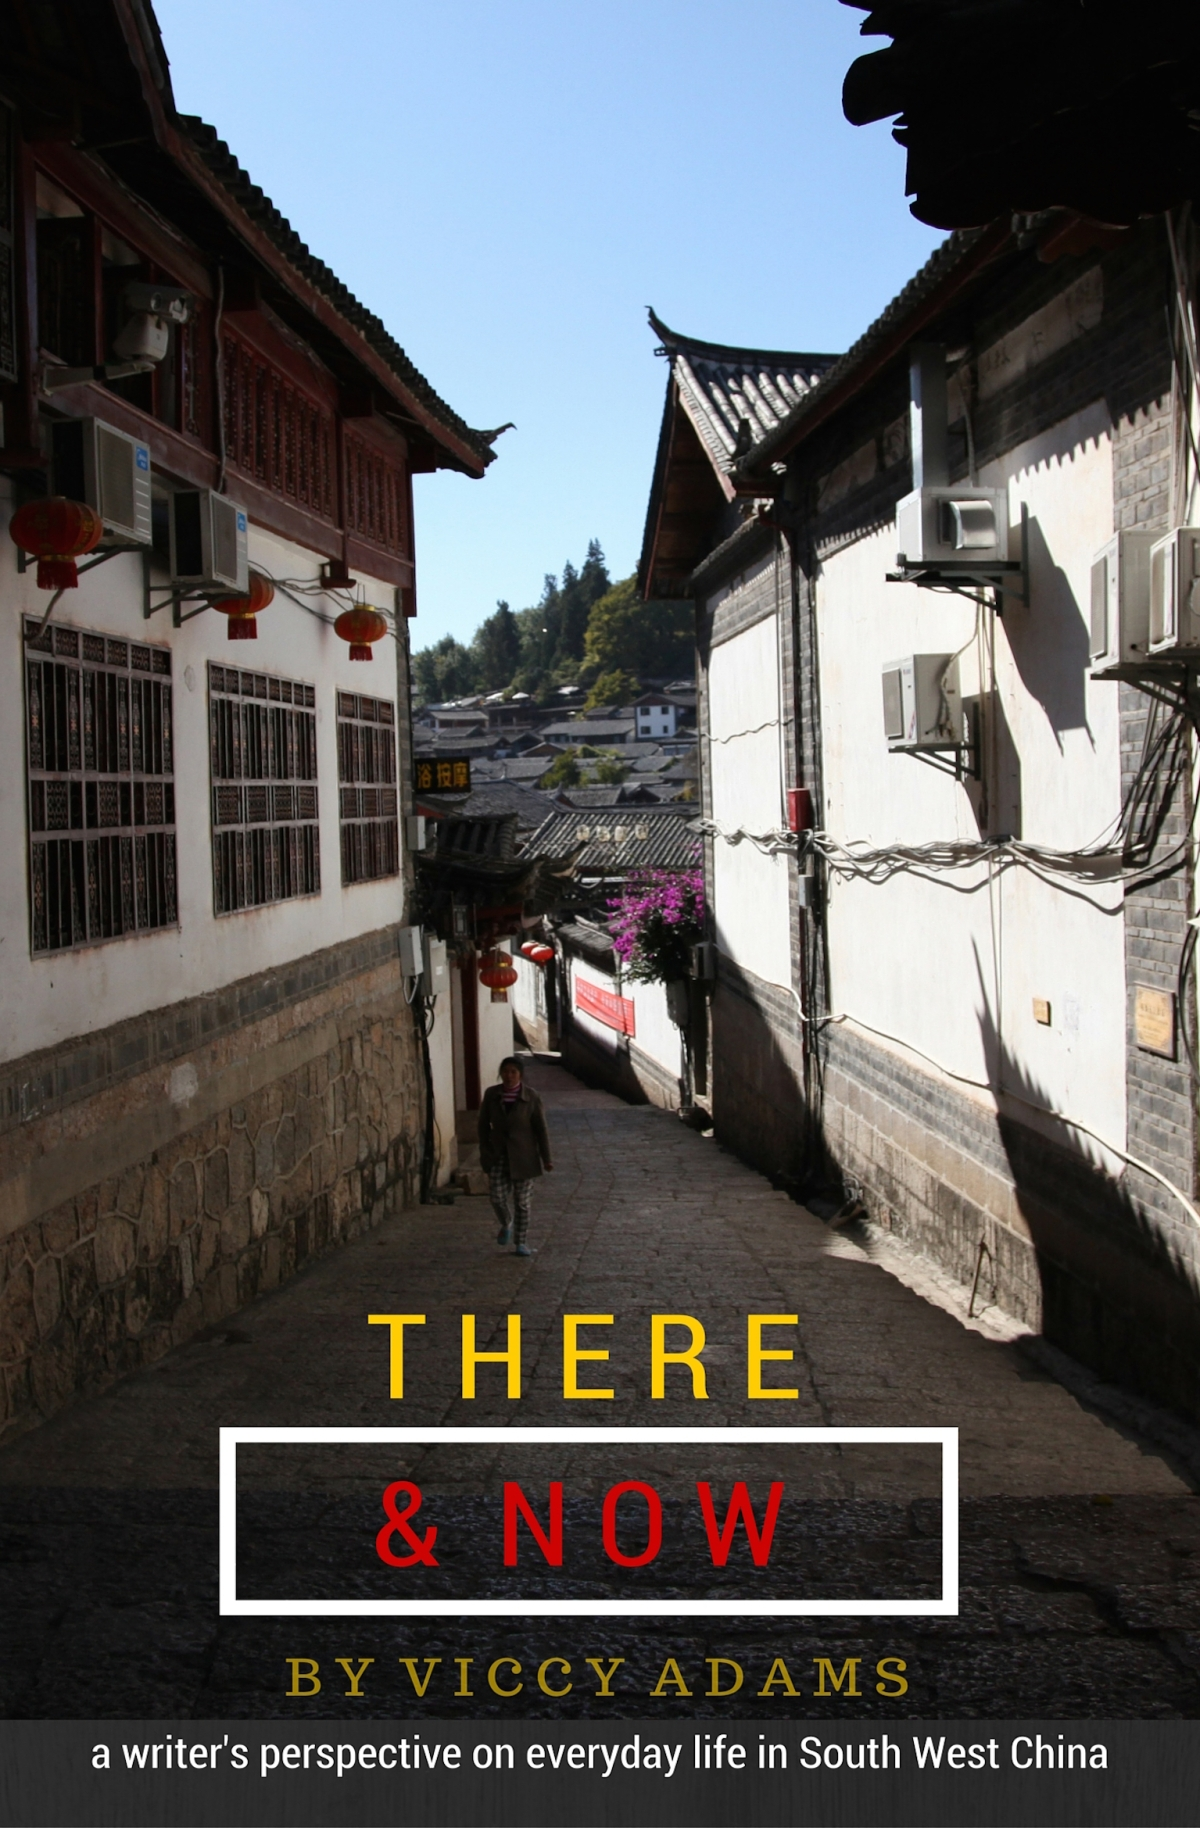 My e-book (There & Now) available for pre-order #writing#china